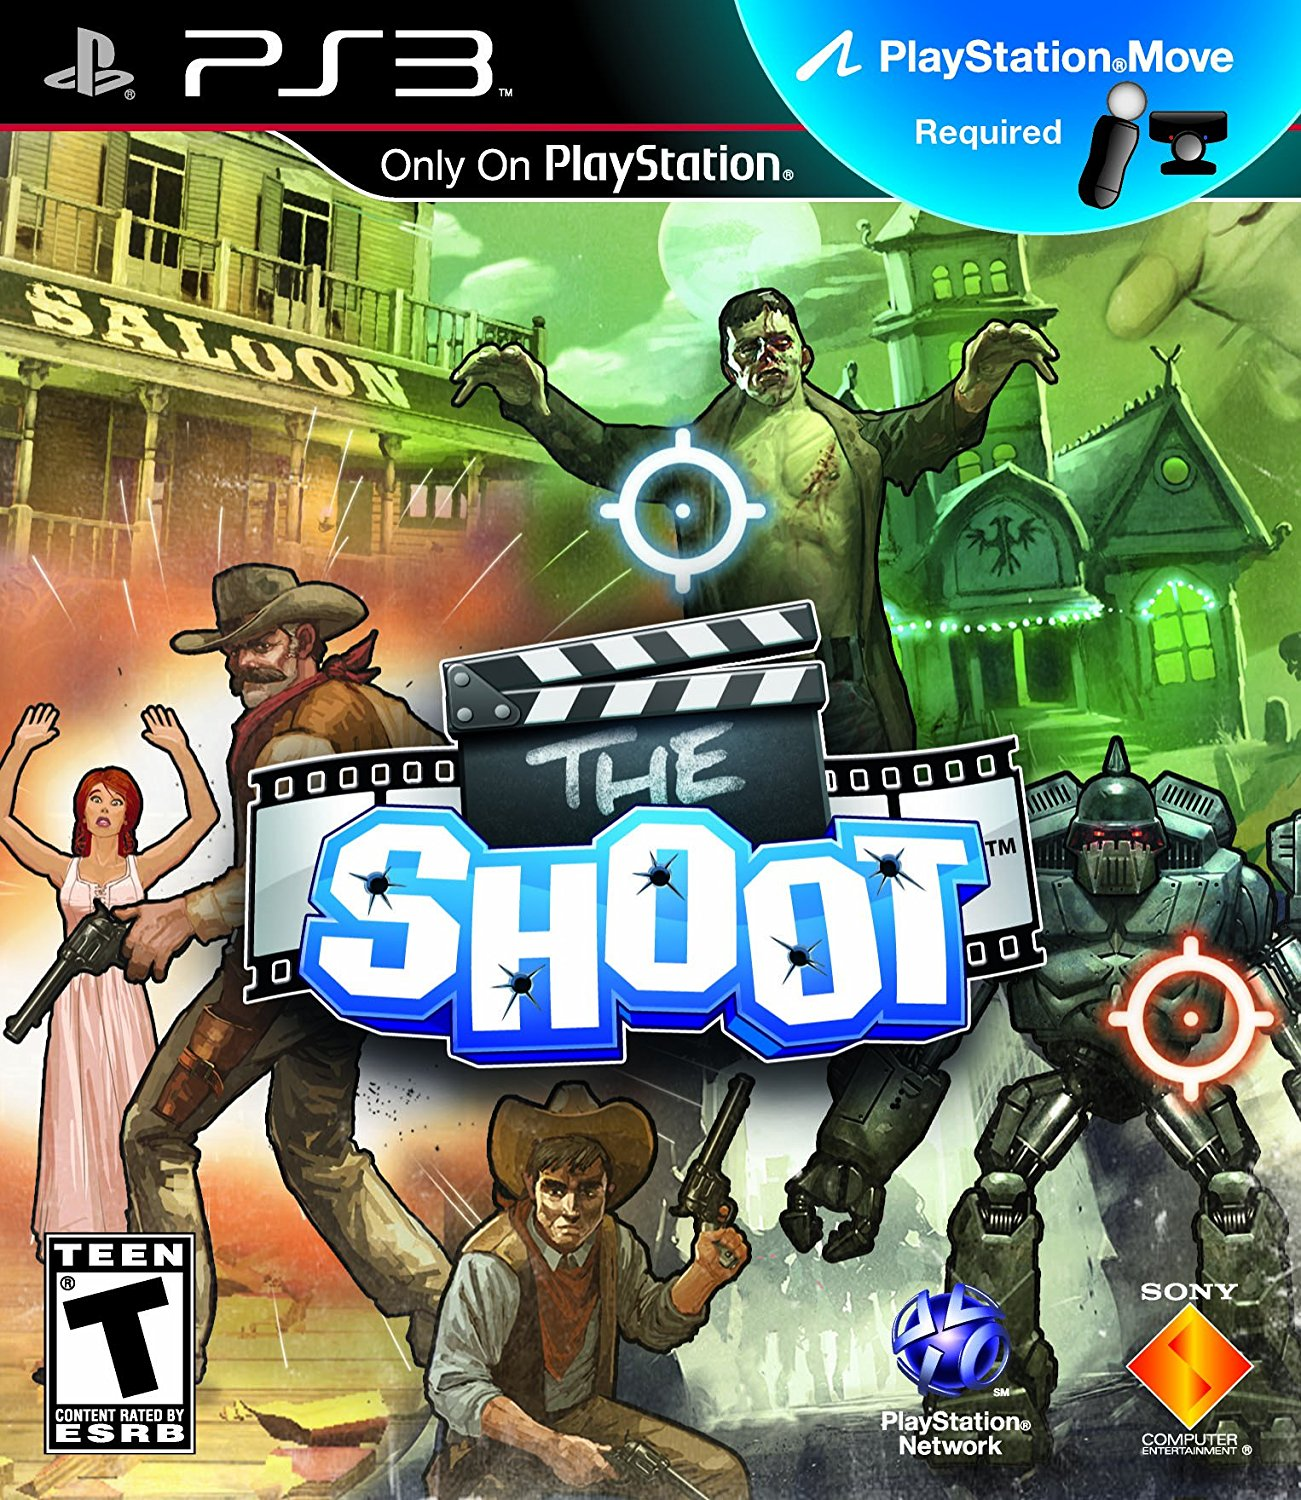 Shoot, The